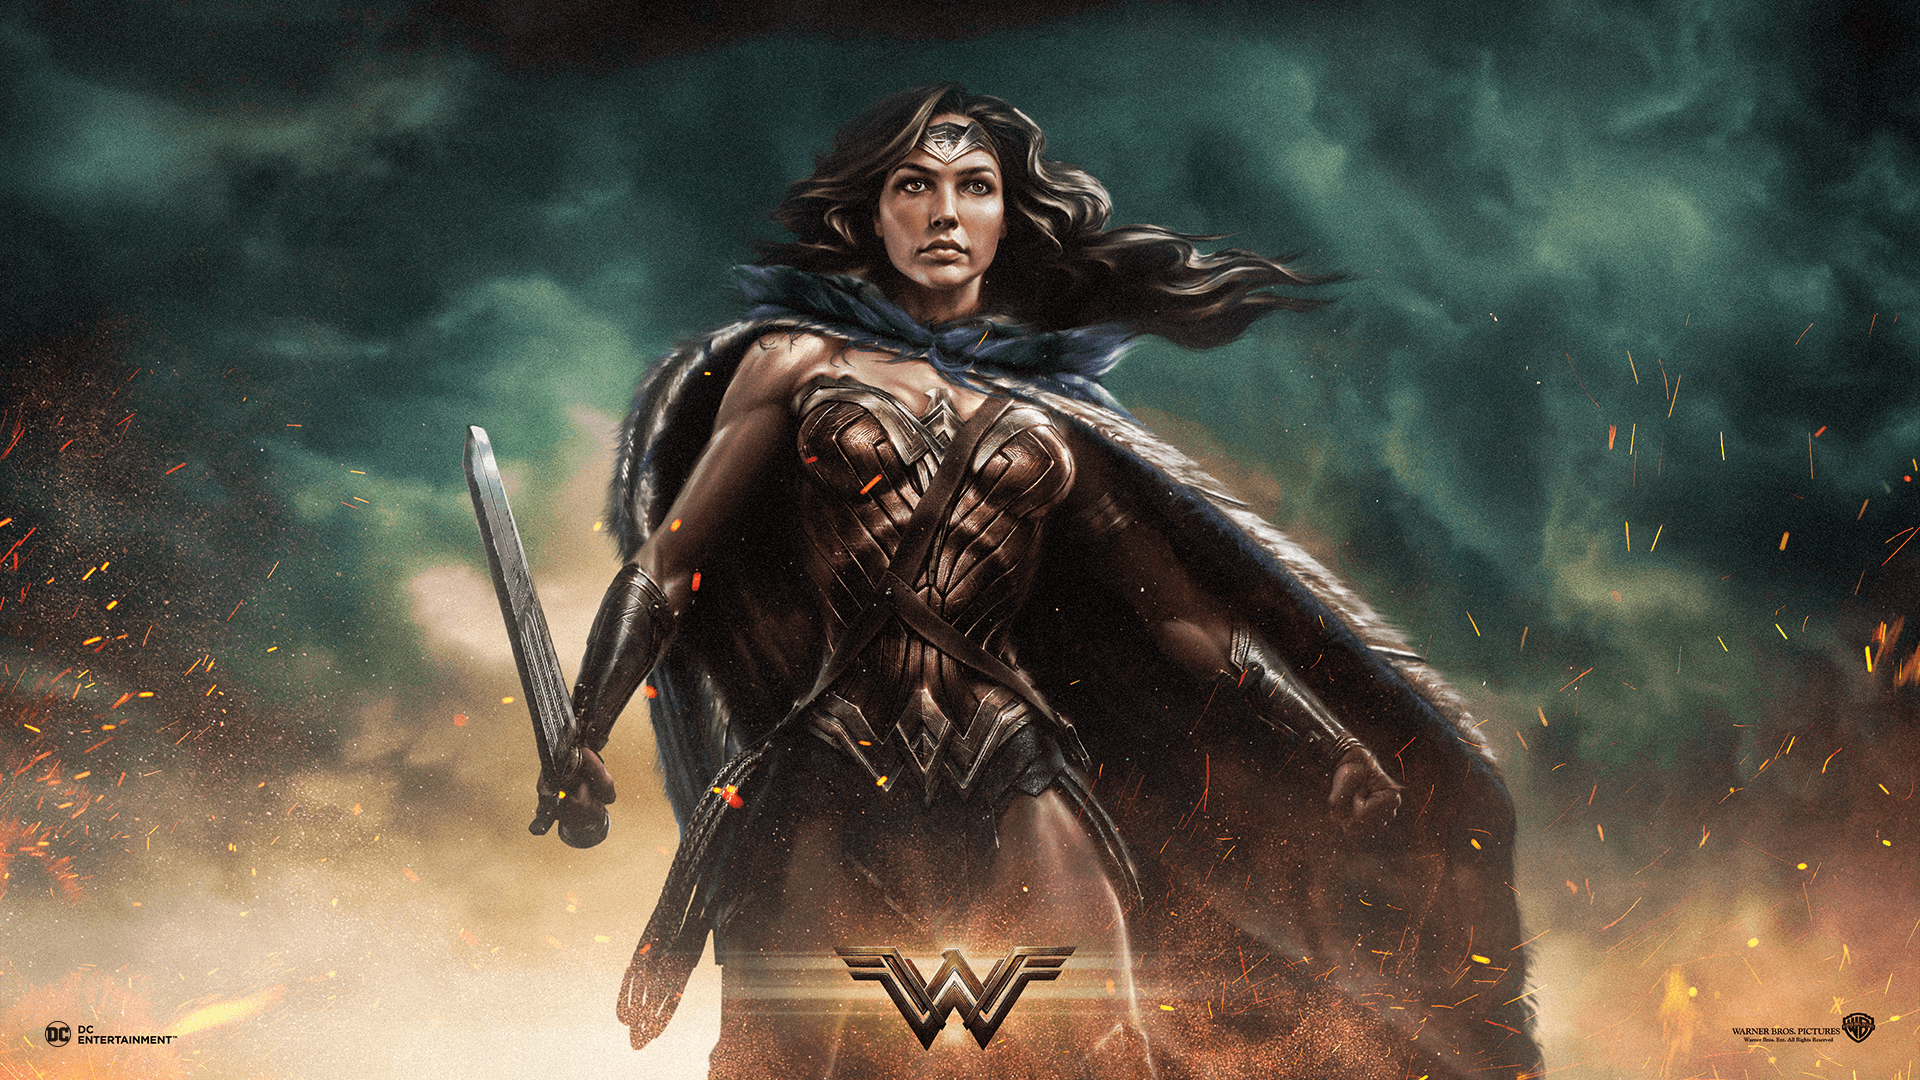 Wonder Woman Wallpaper ~ Sdeerwallpaper